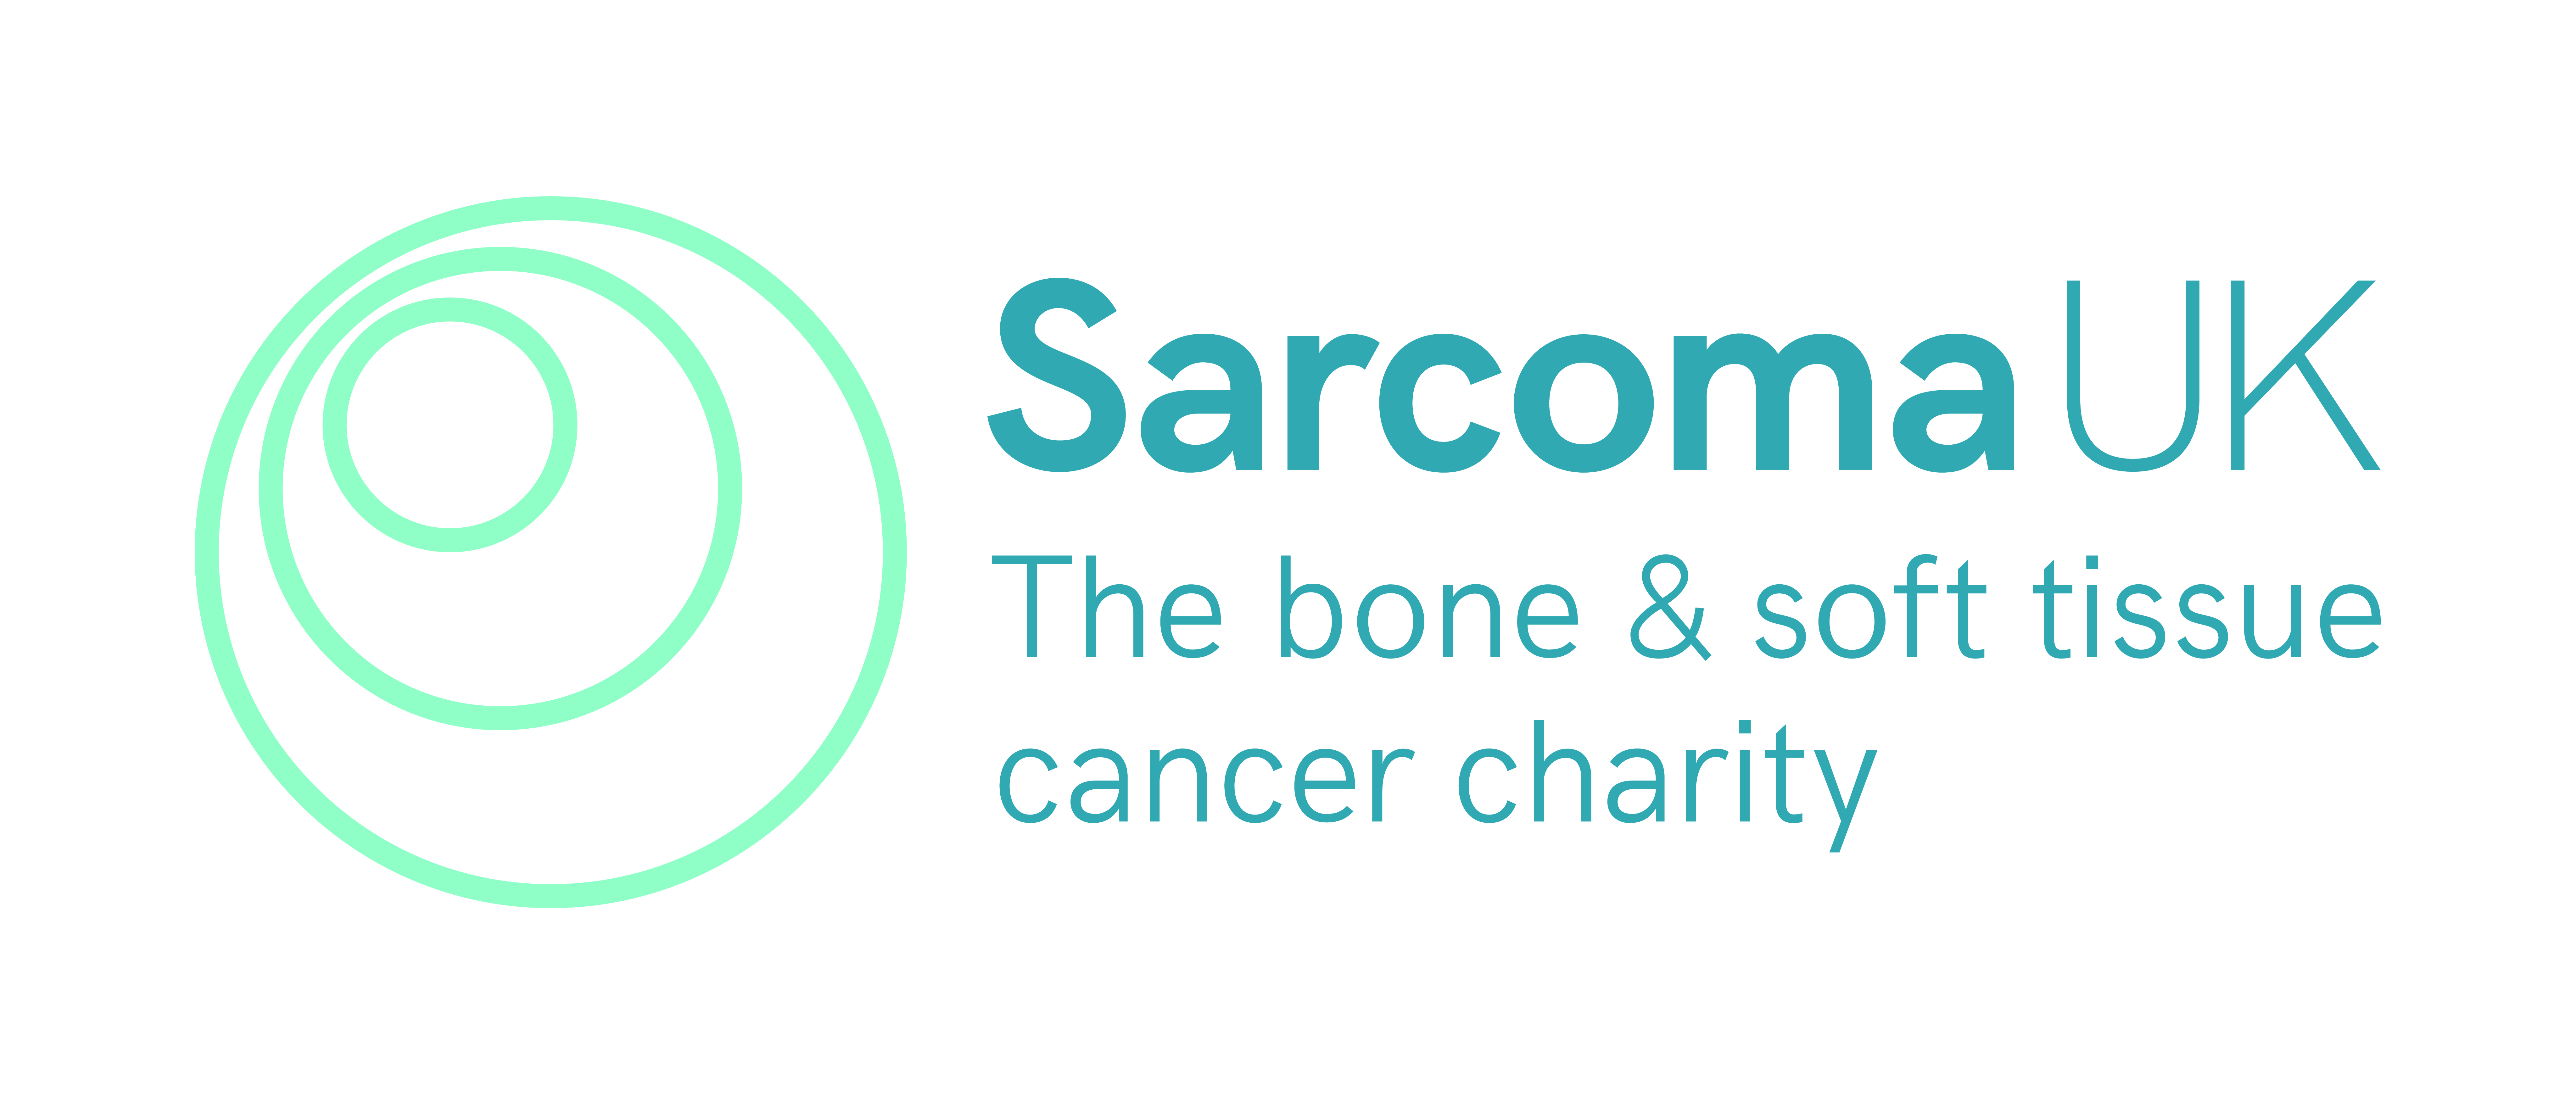 GeeWizz Charity donates £20,000 to Sarcoma UK to fund vital research